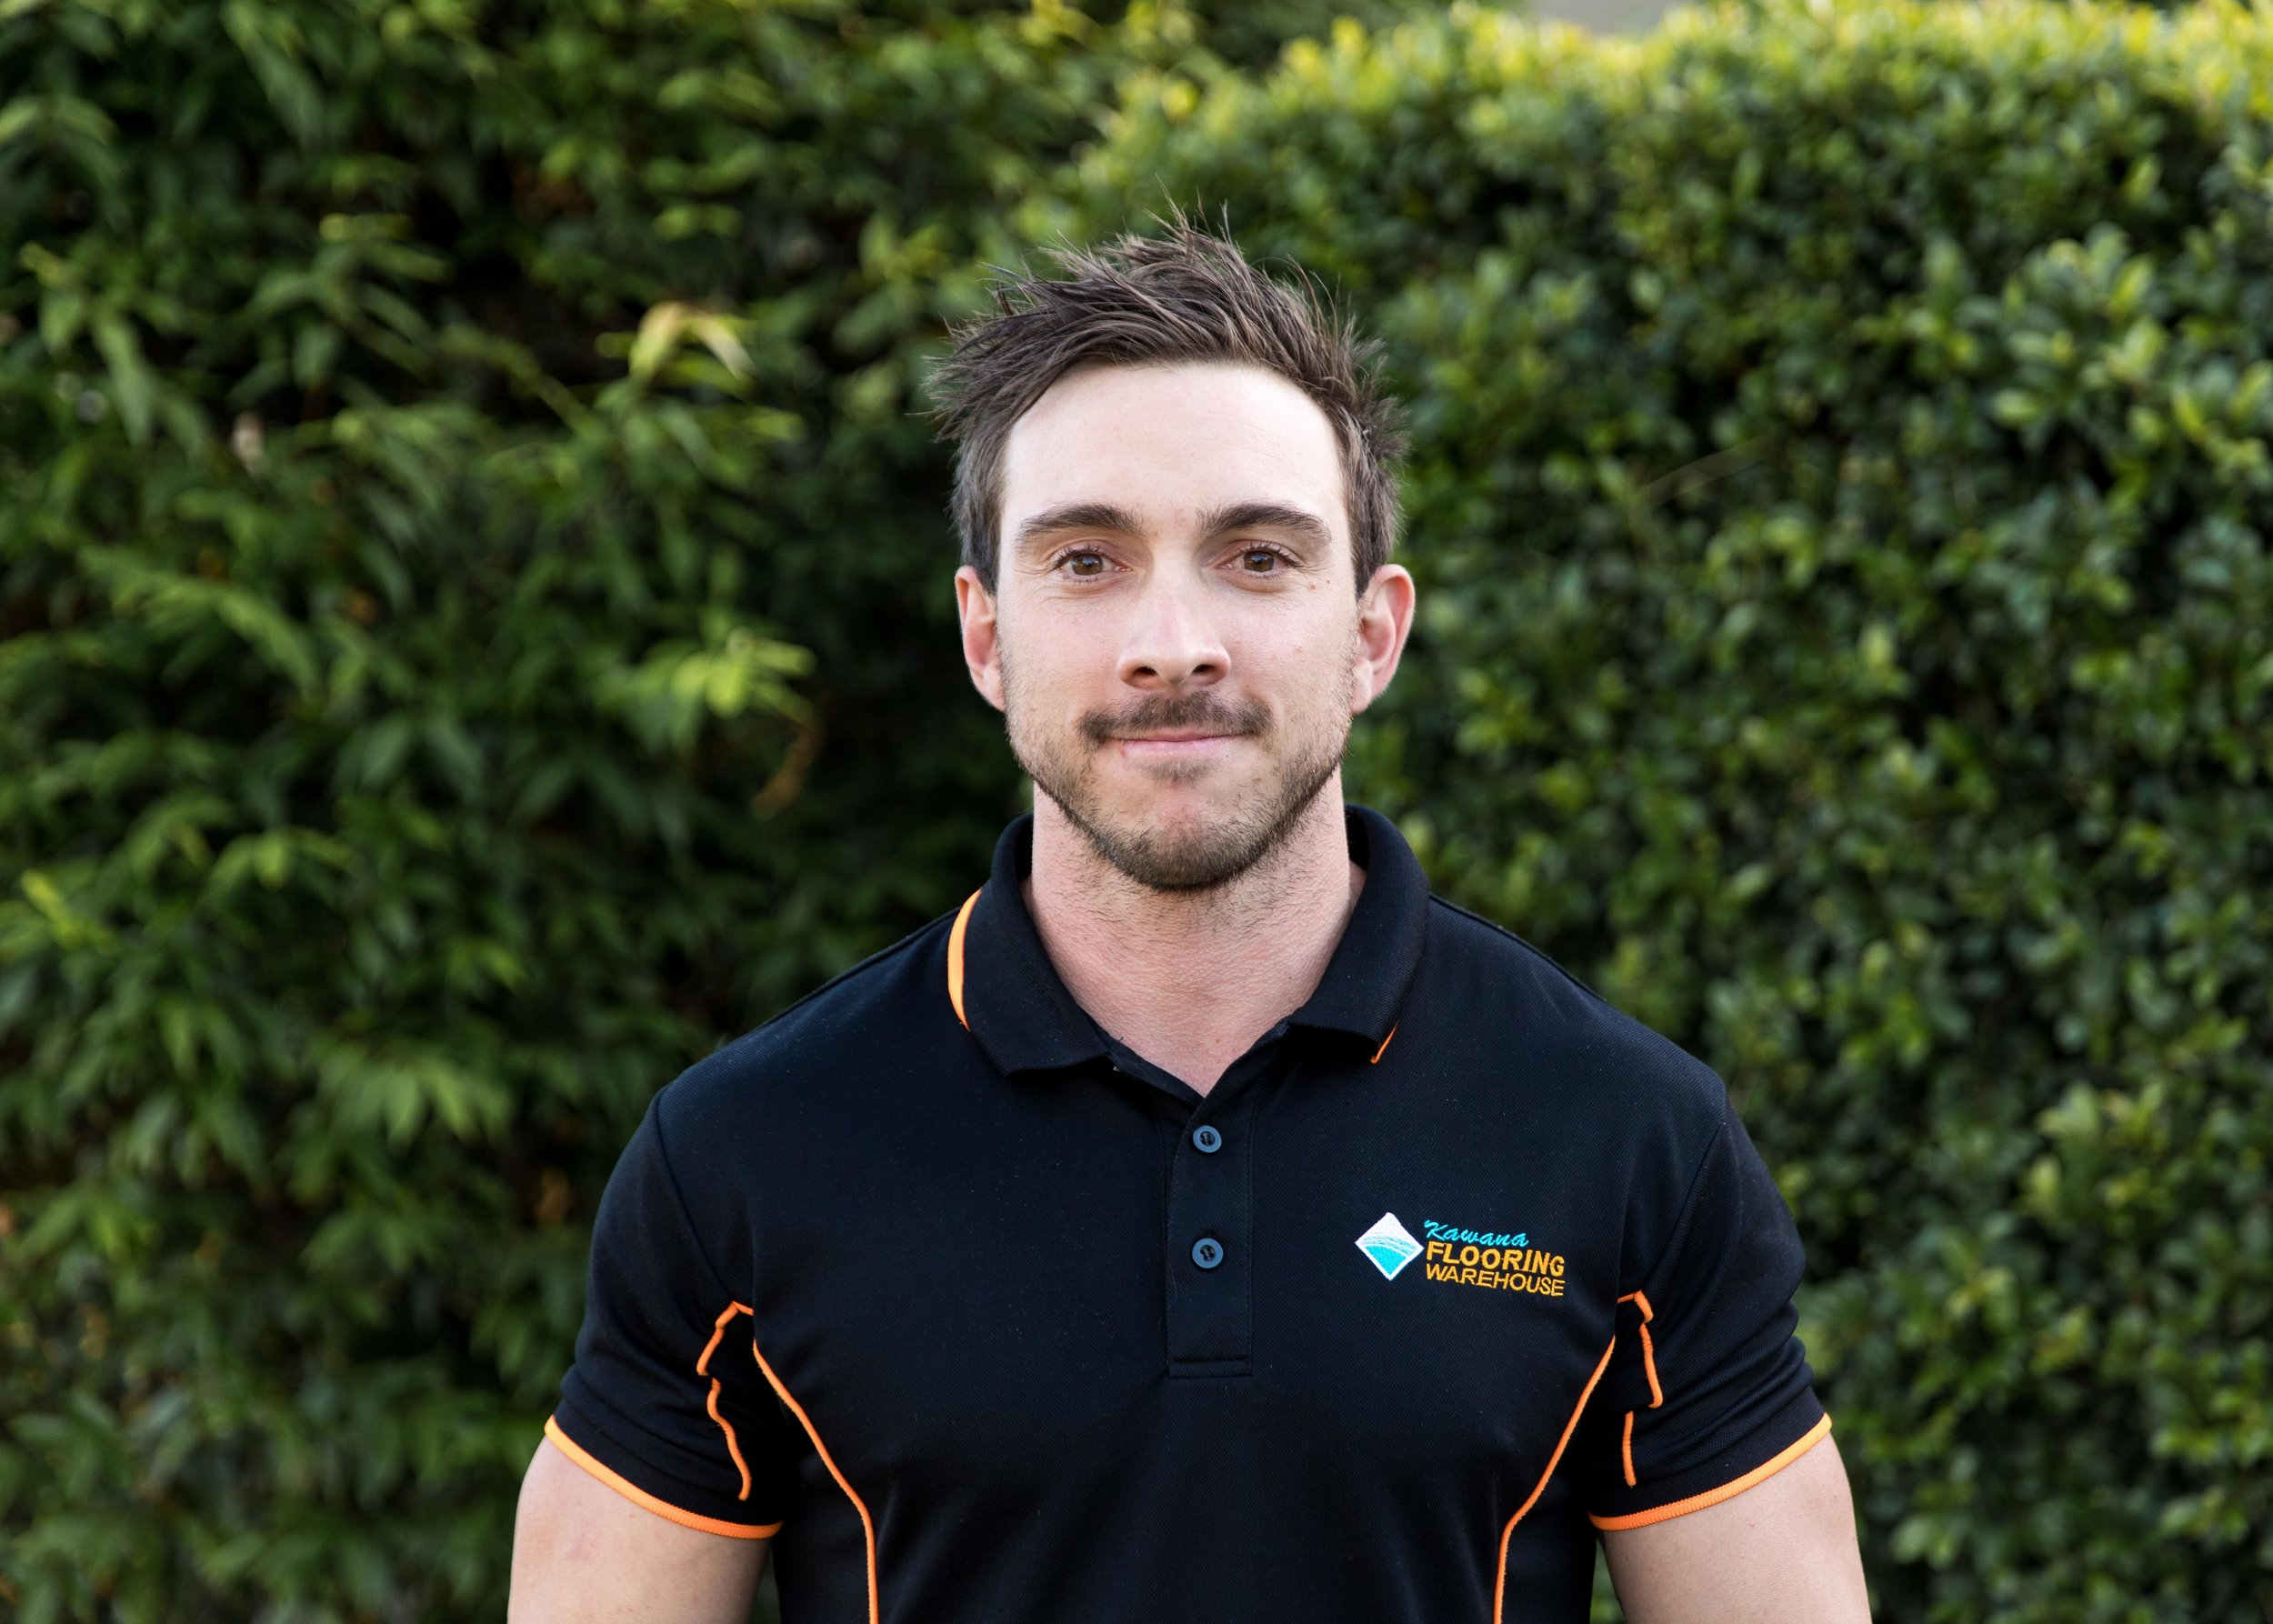 Mitch Ford, Commercial Estimator - What do you like about working at Kawana Flooring?I have a mix between a construction and sales background, so I quite enjoy the challenges the commercial estimating side throws at me and I also enjoy the day-to-day problem solving that is involved in running a business.What are the values that drive you?Honesty, loyalty, commitment and hard work.What do you enjoy doing when you aren't working?I enjoy pretty much anything that involves the outdoors but by far the thing I enjoy the most outside of work is being a dad.